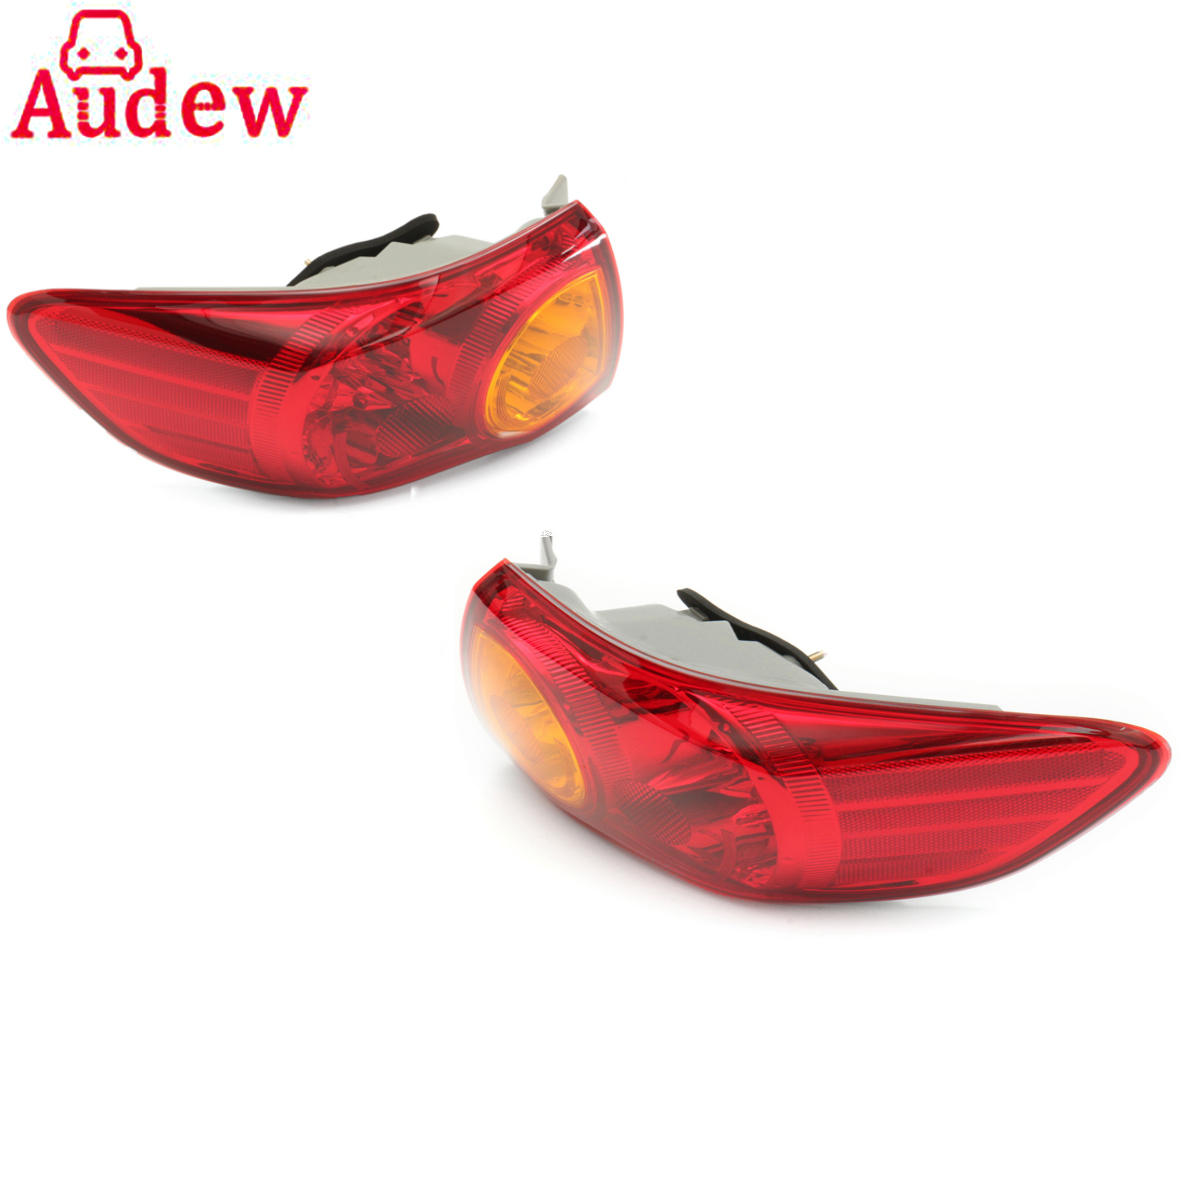 Car Tail Lights Rear Brake Lamps Outer Left/Right Passenger Side For Toyota Corolla 09-10 geely emgrand 7 ec7 ec715 ec718 emgrand7 e7 car right left taillights rear lights brake light original